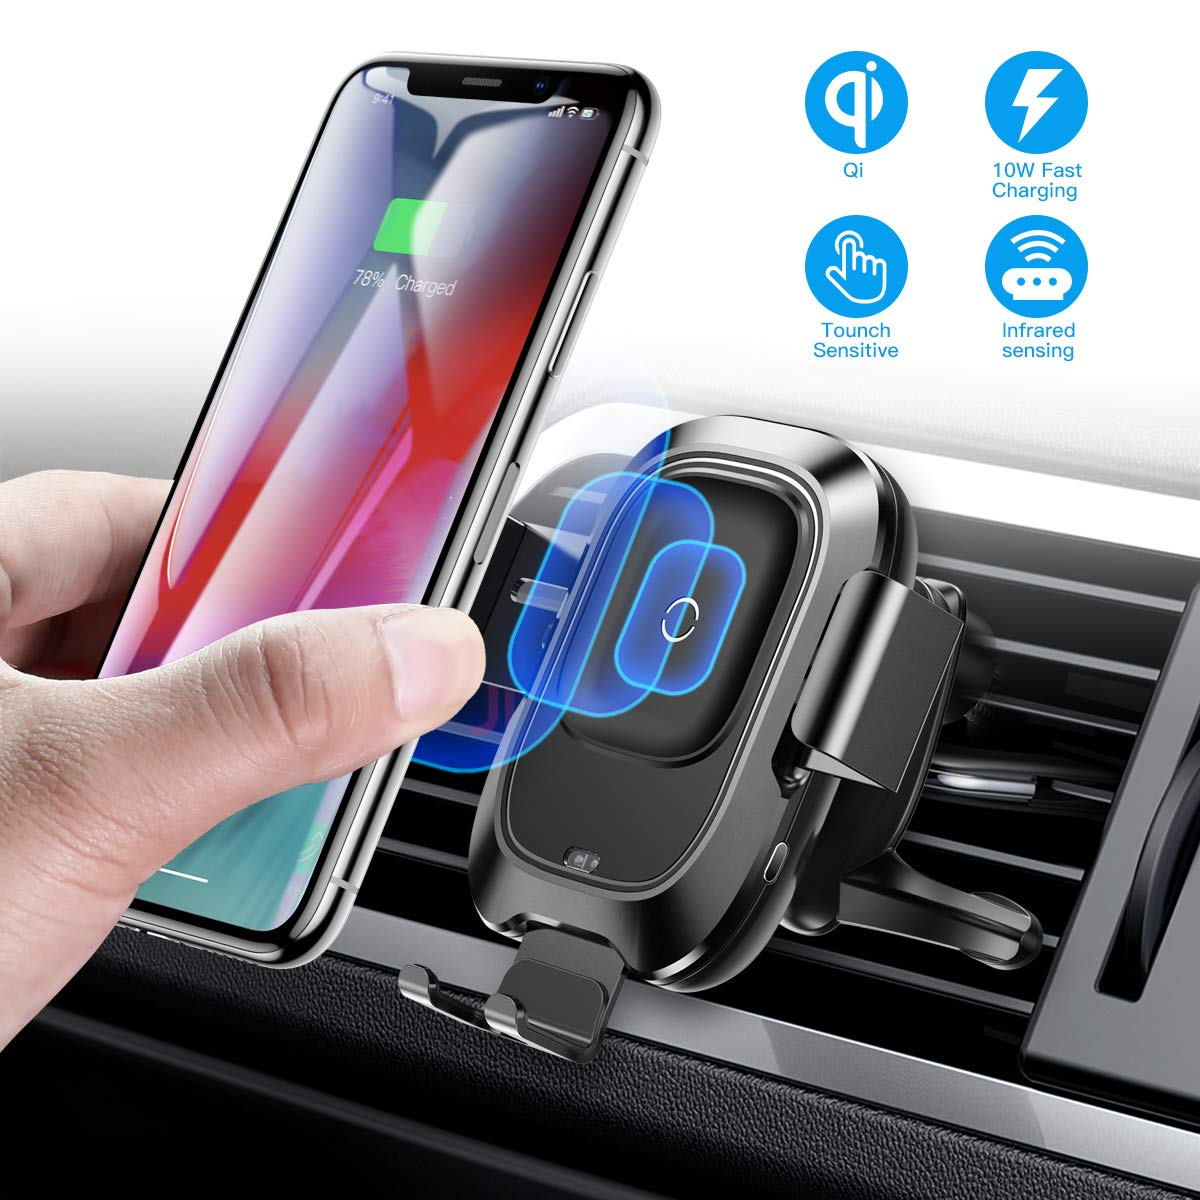 Baseus Wireless Car Charger Mount, 10w Automatic Clamping Air Vent Qi Fast Charging Car Phone Holder Compatible with iPhone Xs/Xs Max/XR/X, Galaxy Note 9/ S9/ S9+ & Other Qi-Enabled 4.7-6.5Inch by Baseus